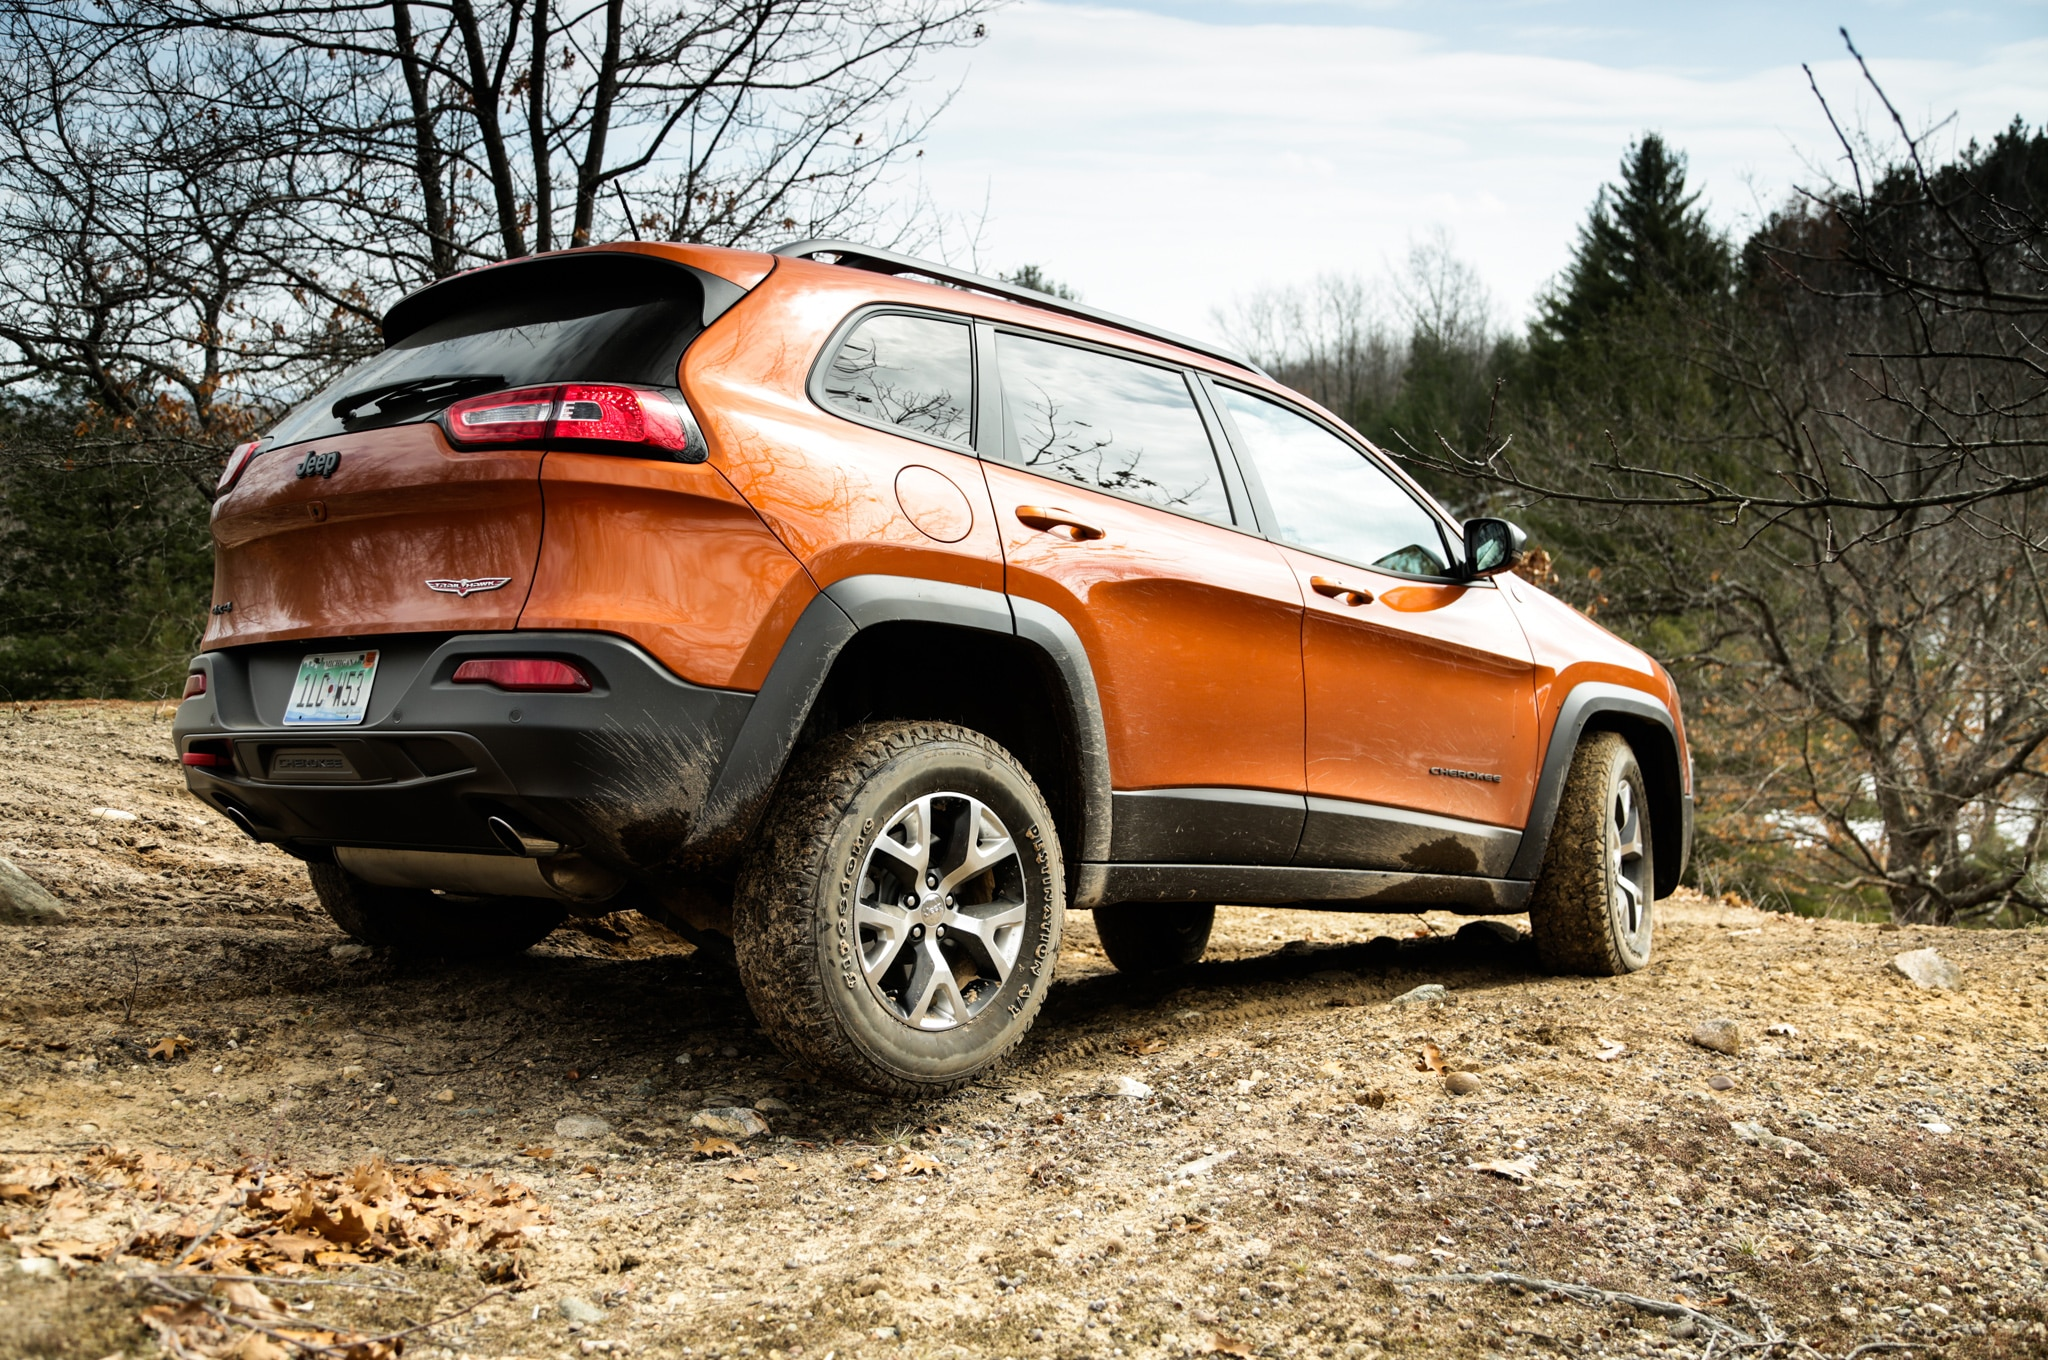 Used Jeep Cherokee Trailhawk >> 2014 Jeep Cherokee Limited - Blazing a Trail for our ...